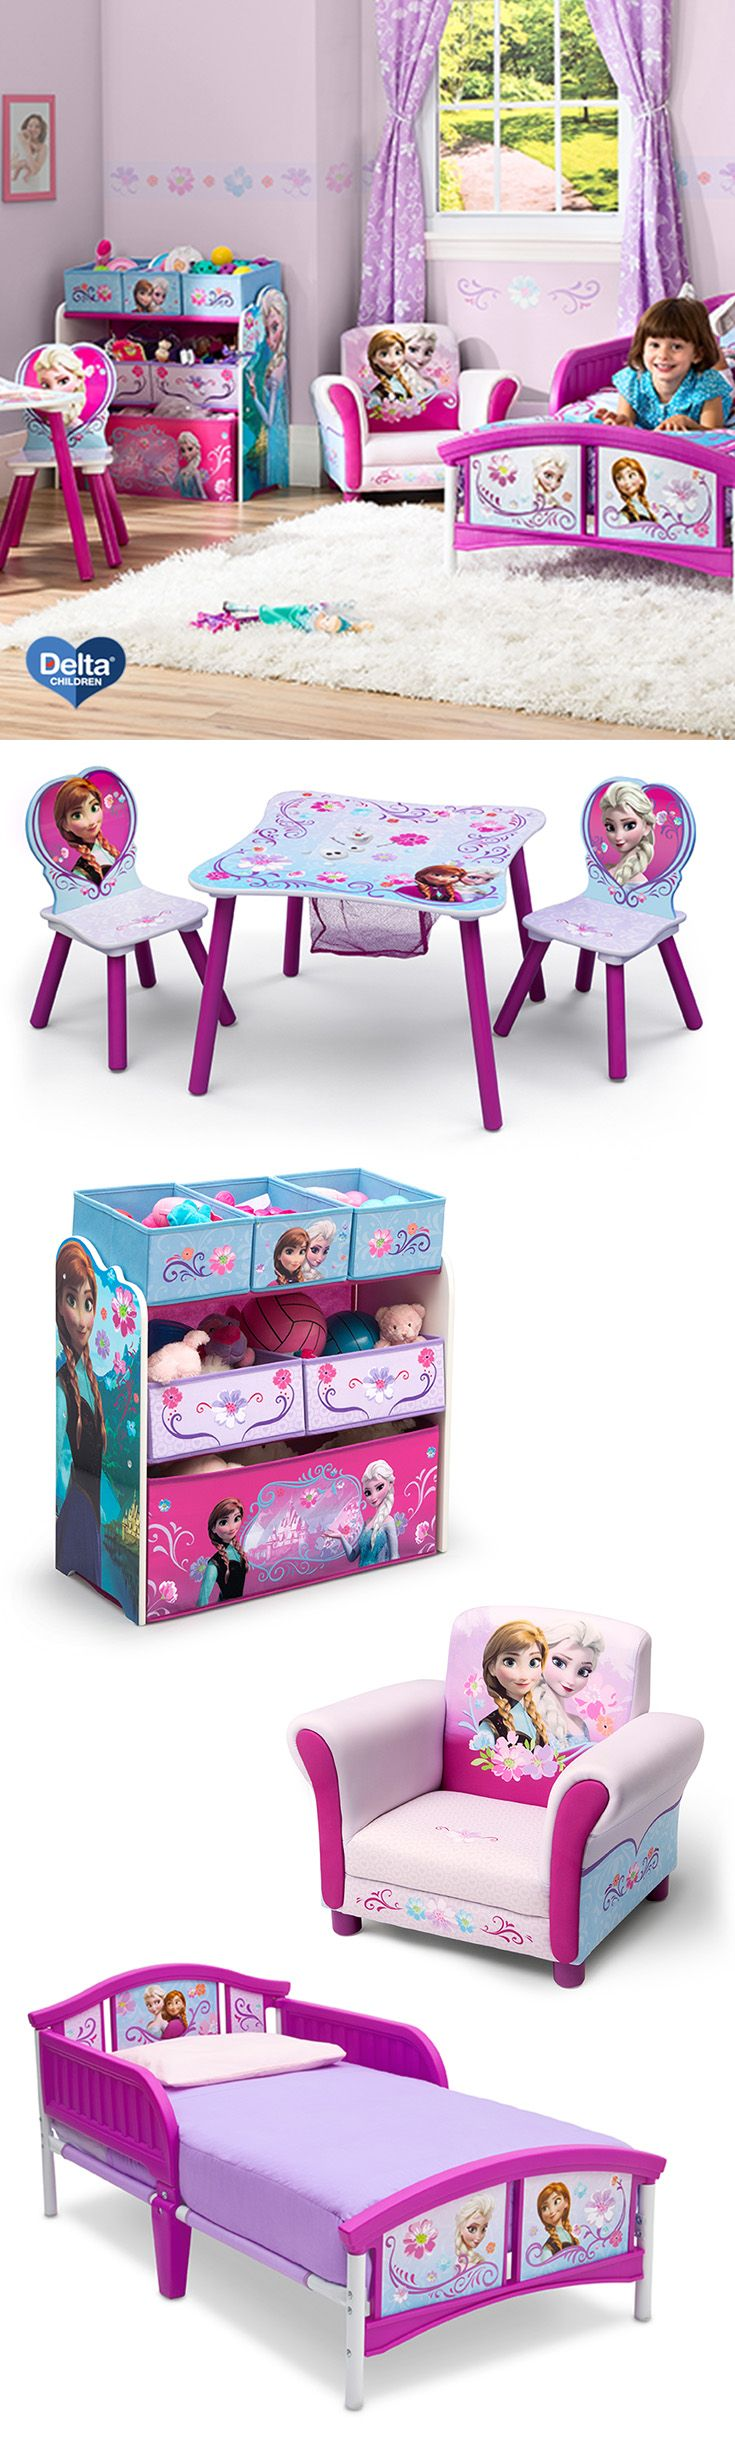 Storage Organizer Toy Box Disney Frozen Playroom Bedroom: Give Your Daughter Her Dream Room With These Frozen Themed